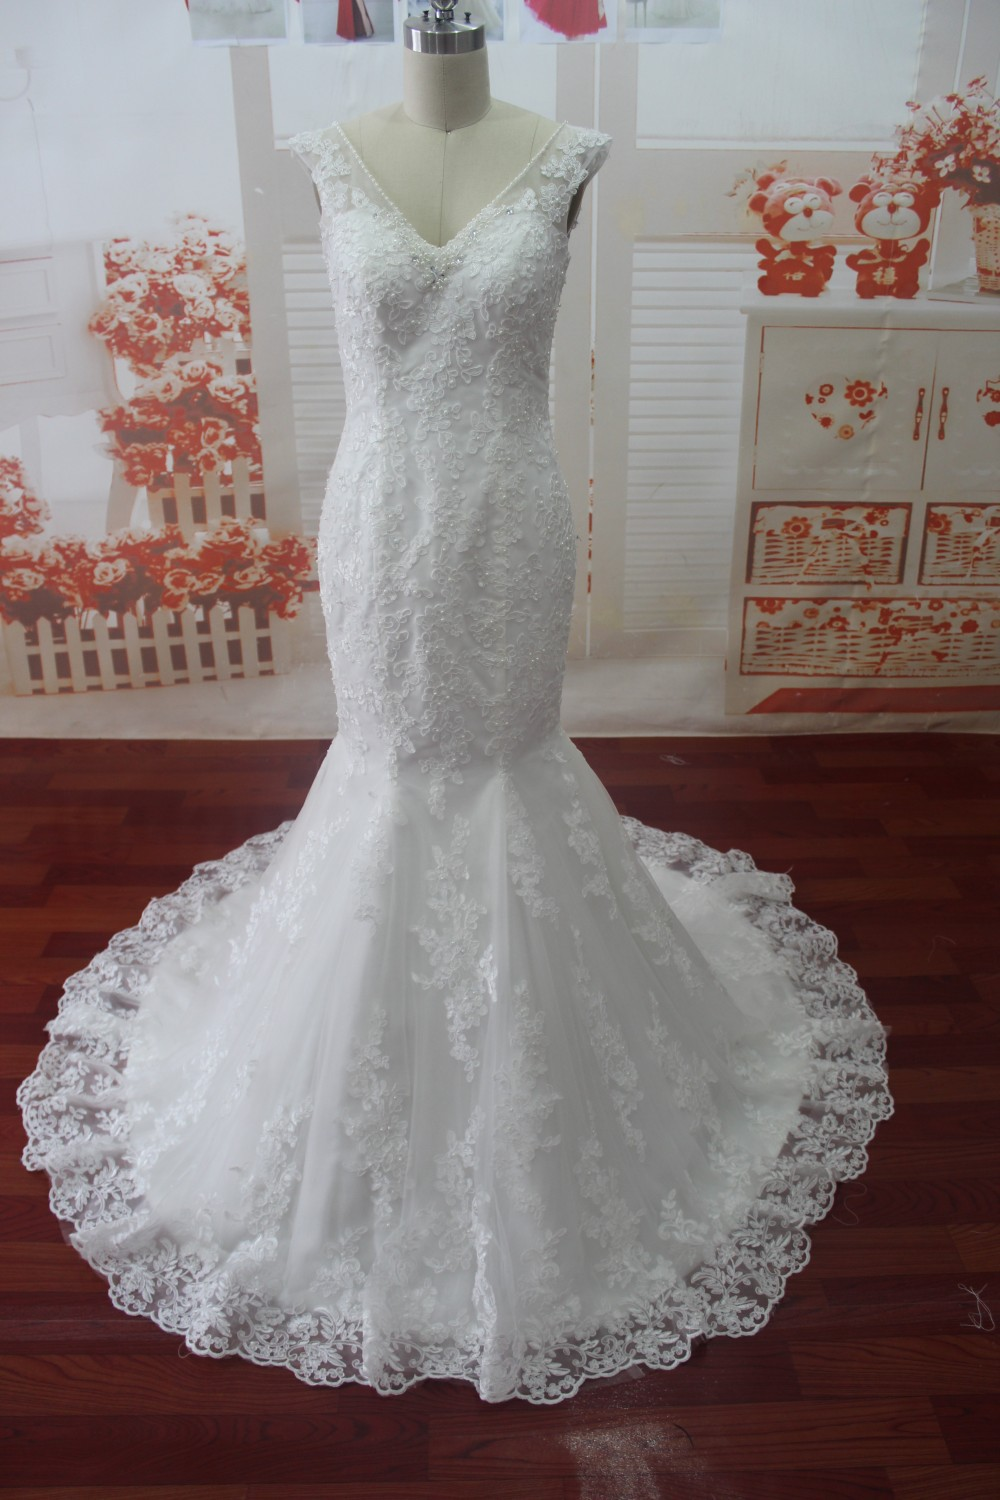 SG32 2015 Sexy Wedding Dress V Neck Beaded Lace Up Mermaid Floor Length Court Train Long Dresses Mermaid Bridal Gowns